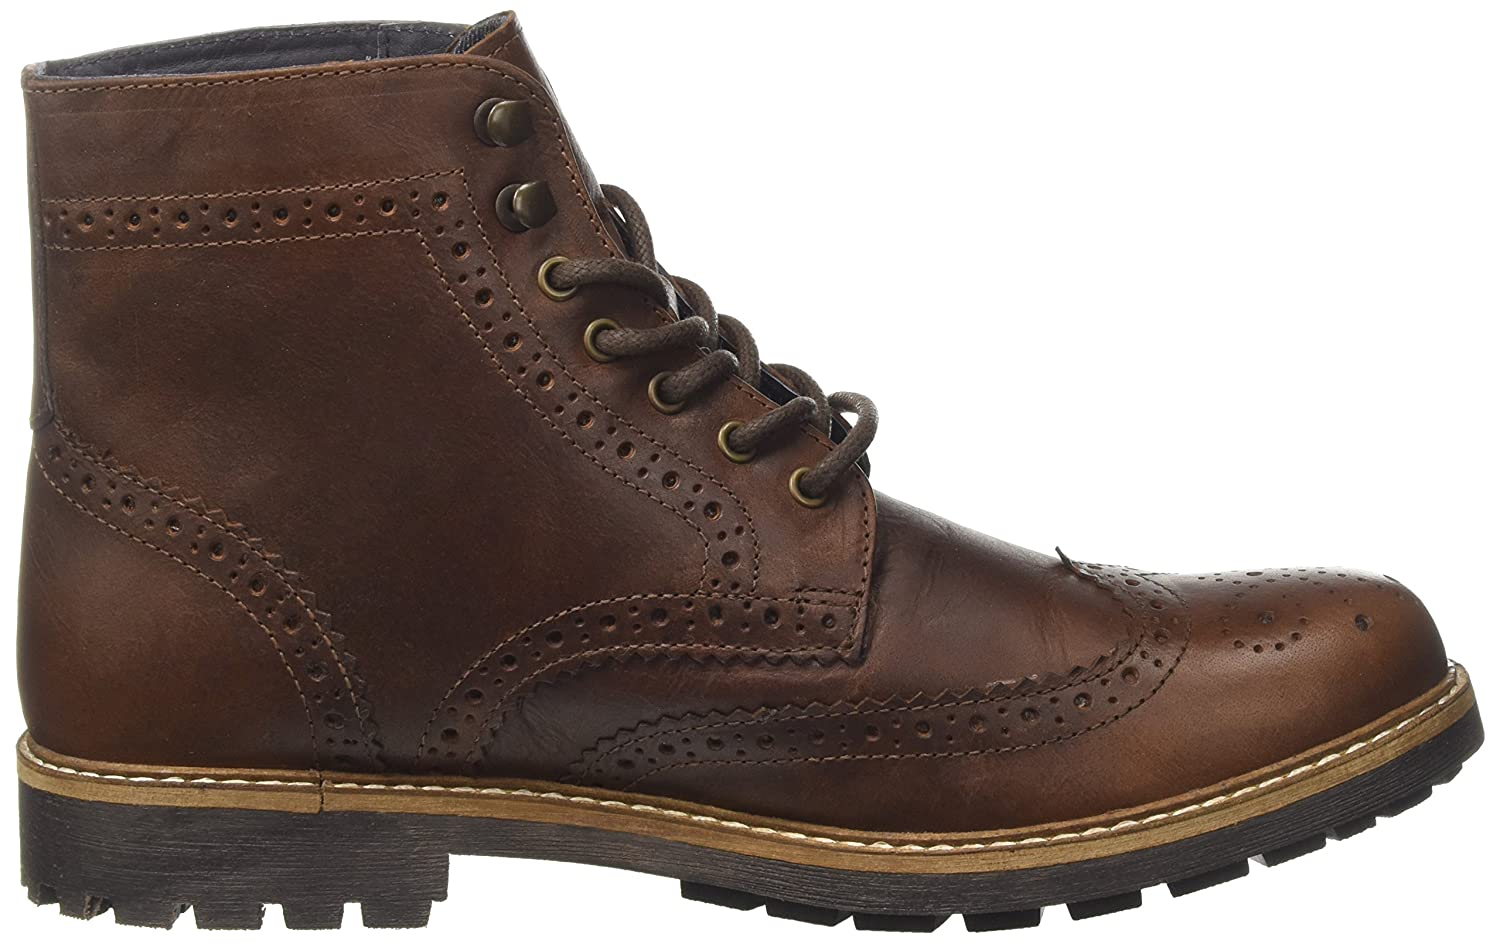 Whitwell Homme Bottes Red Tape